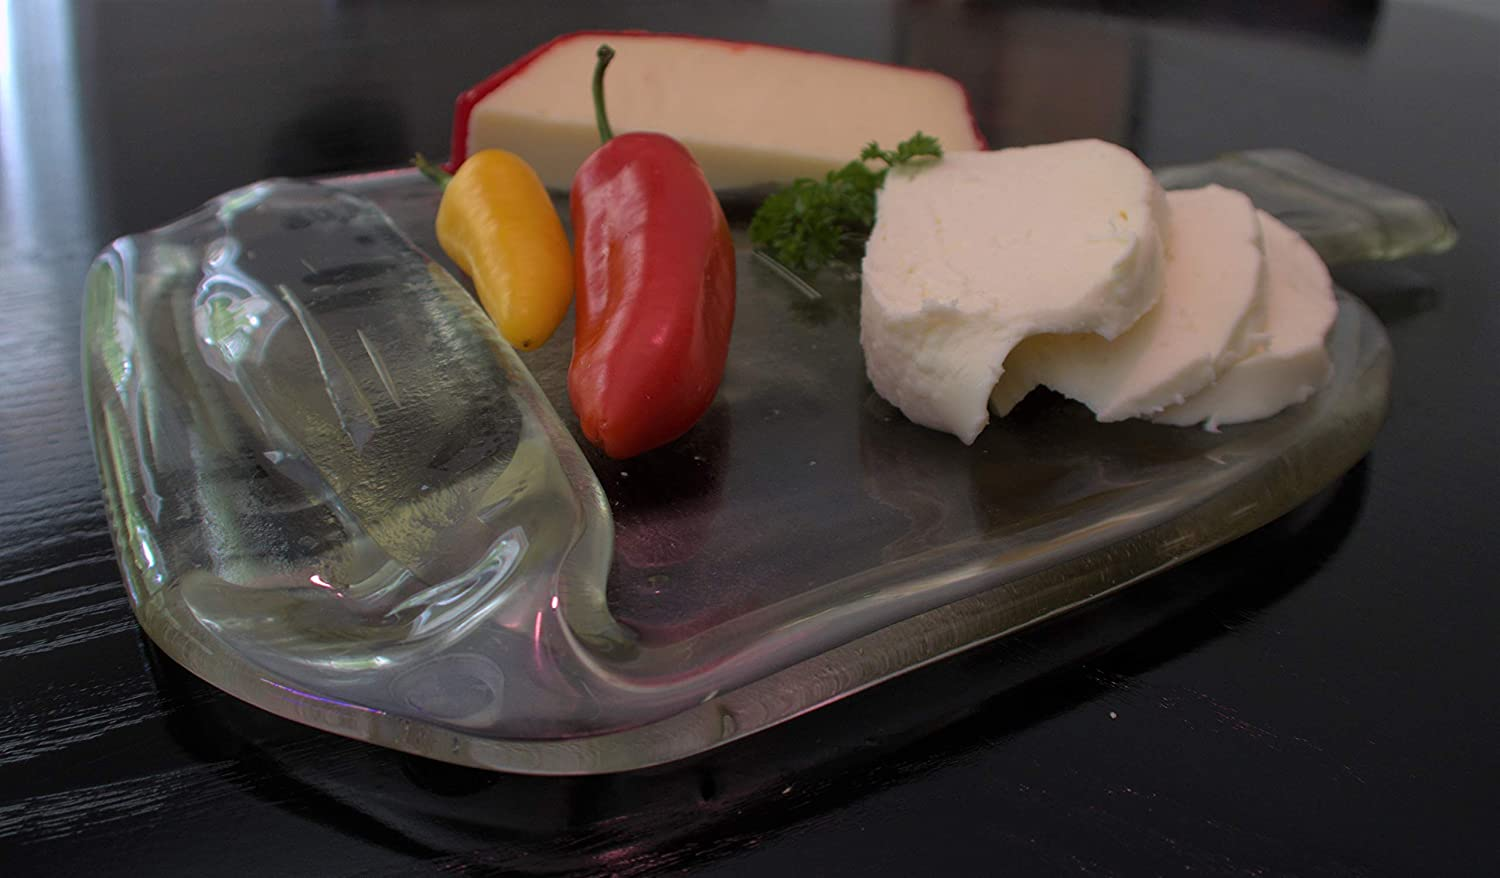 1.75 liter Woodford Reserve Bourbon Whiskey bottle Slumped into a Cutting Board or Cheese Tray